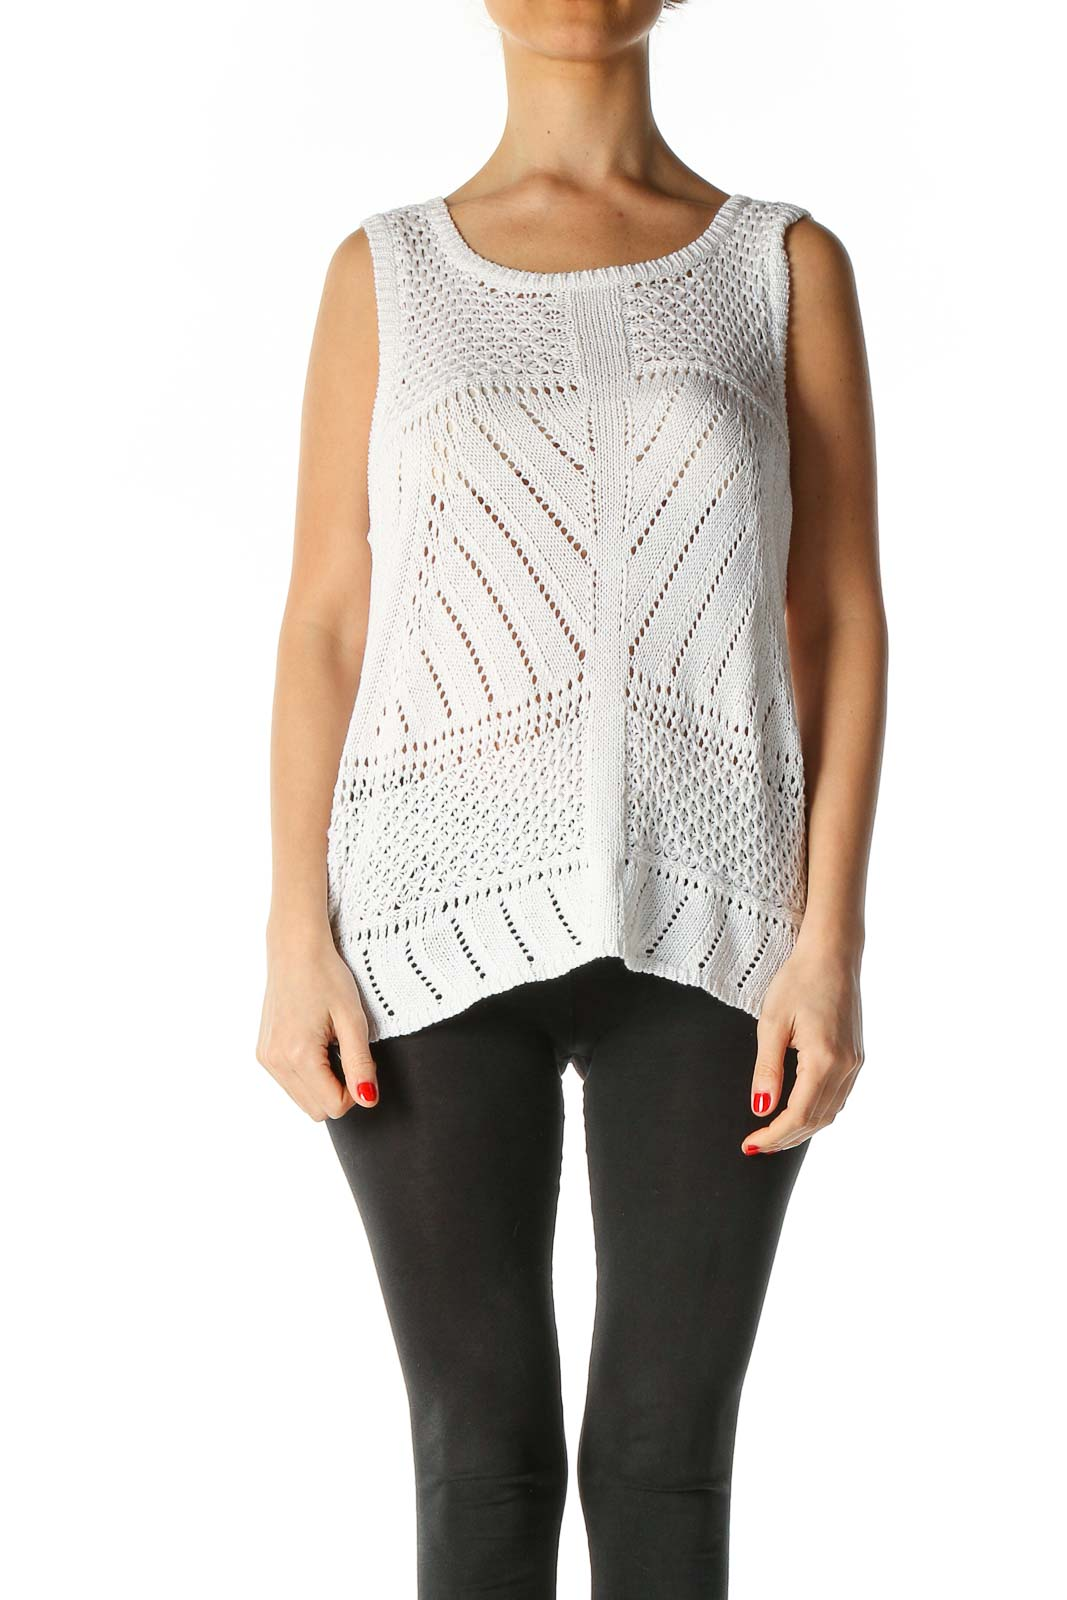 White Textured Tank Top Front